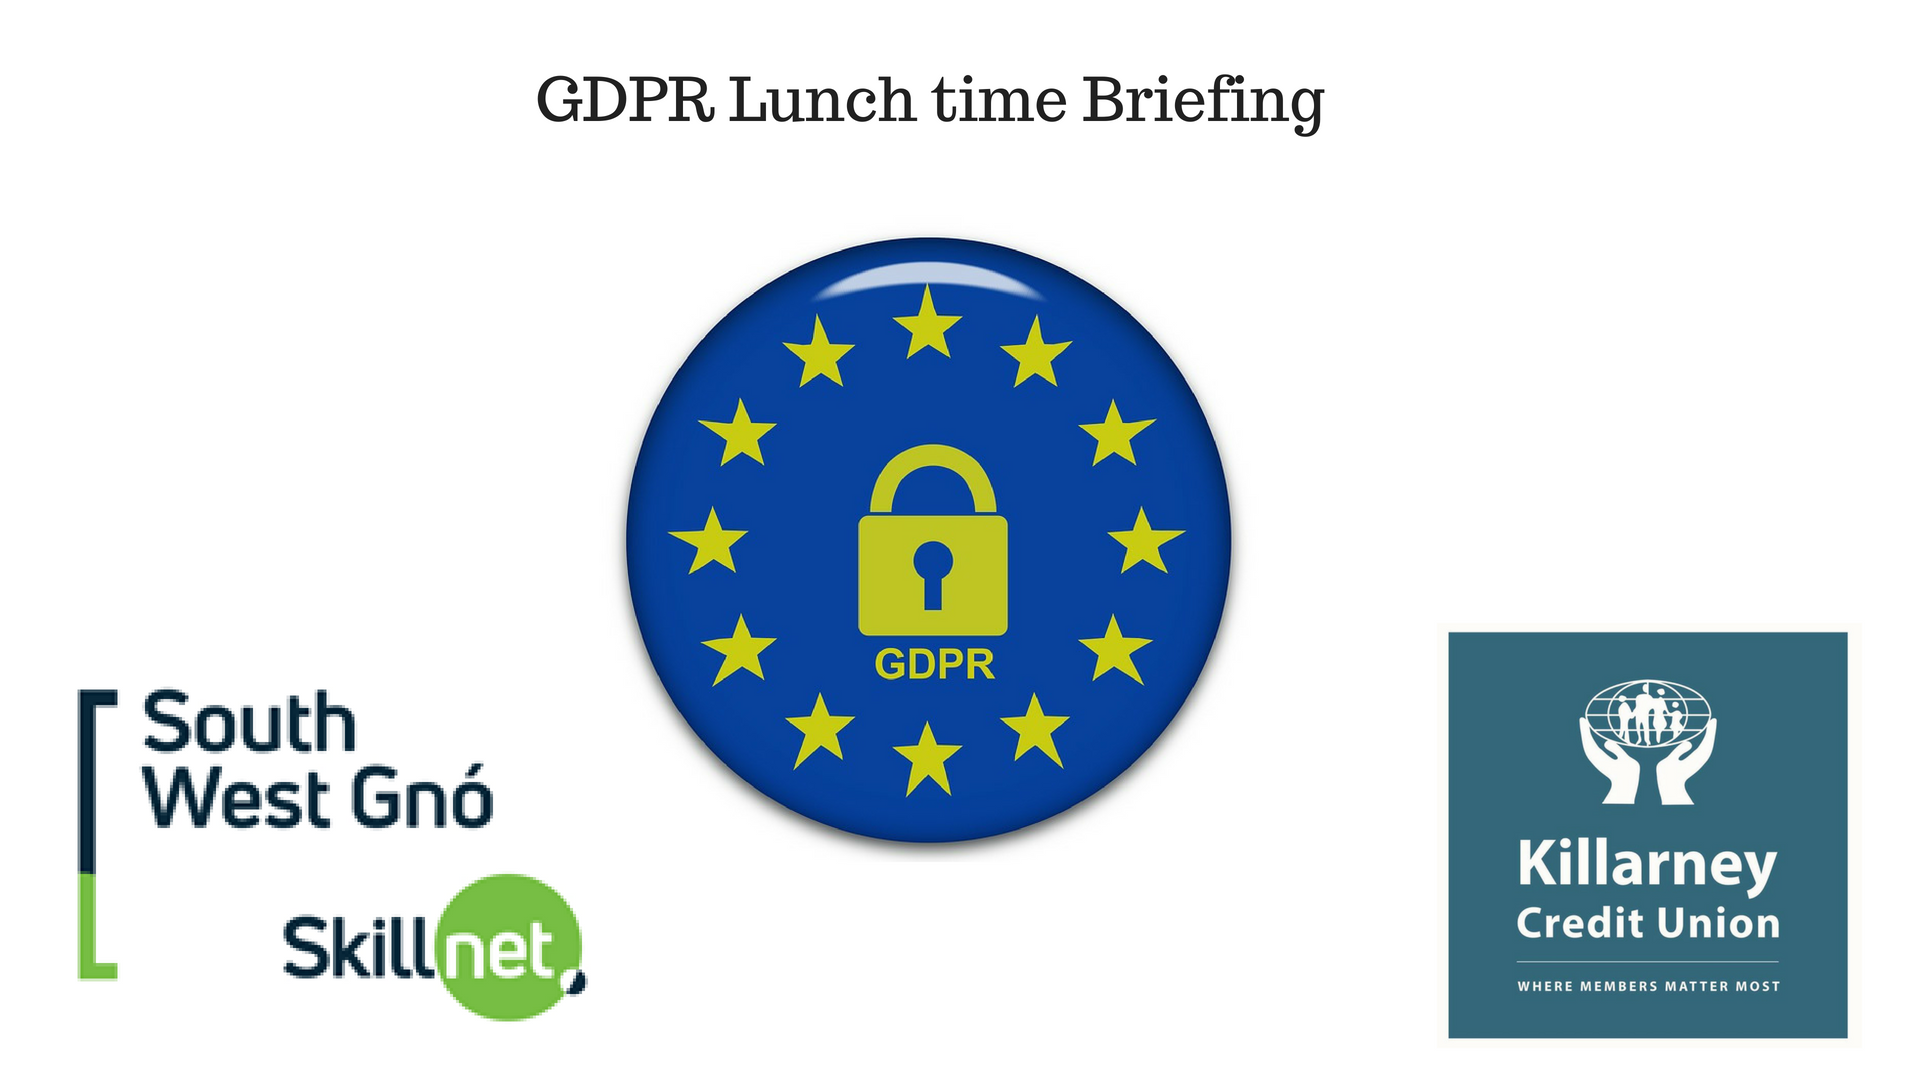 GDPR Lunch time Briefing